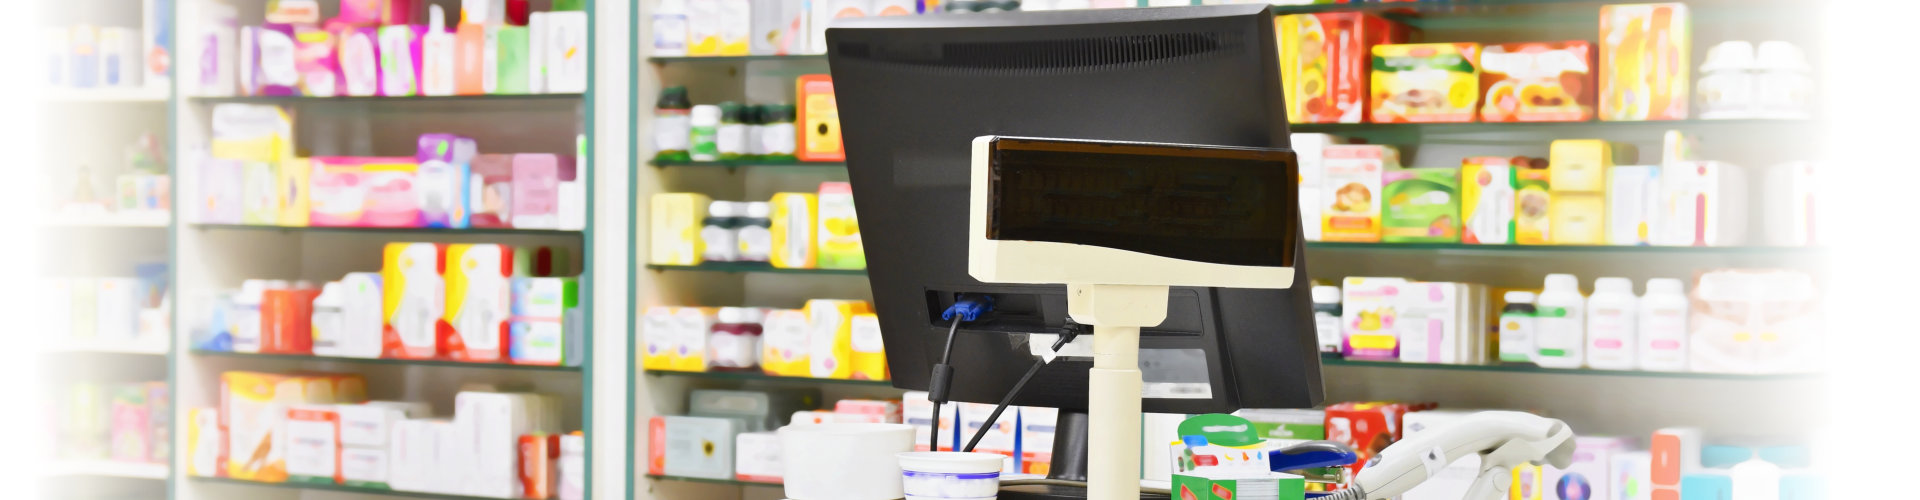 Cash desk - computer and monitor in a pharmacy